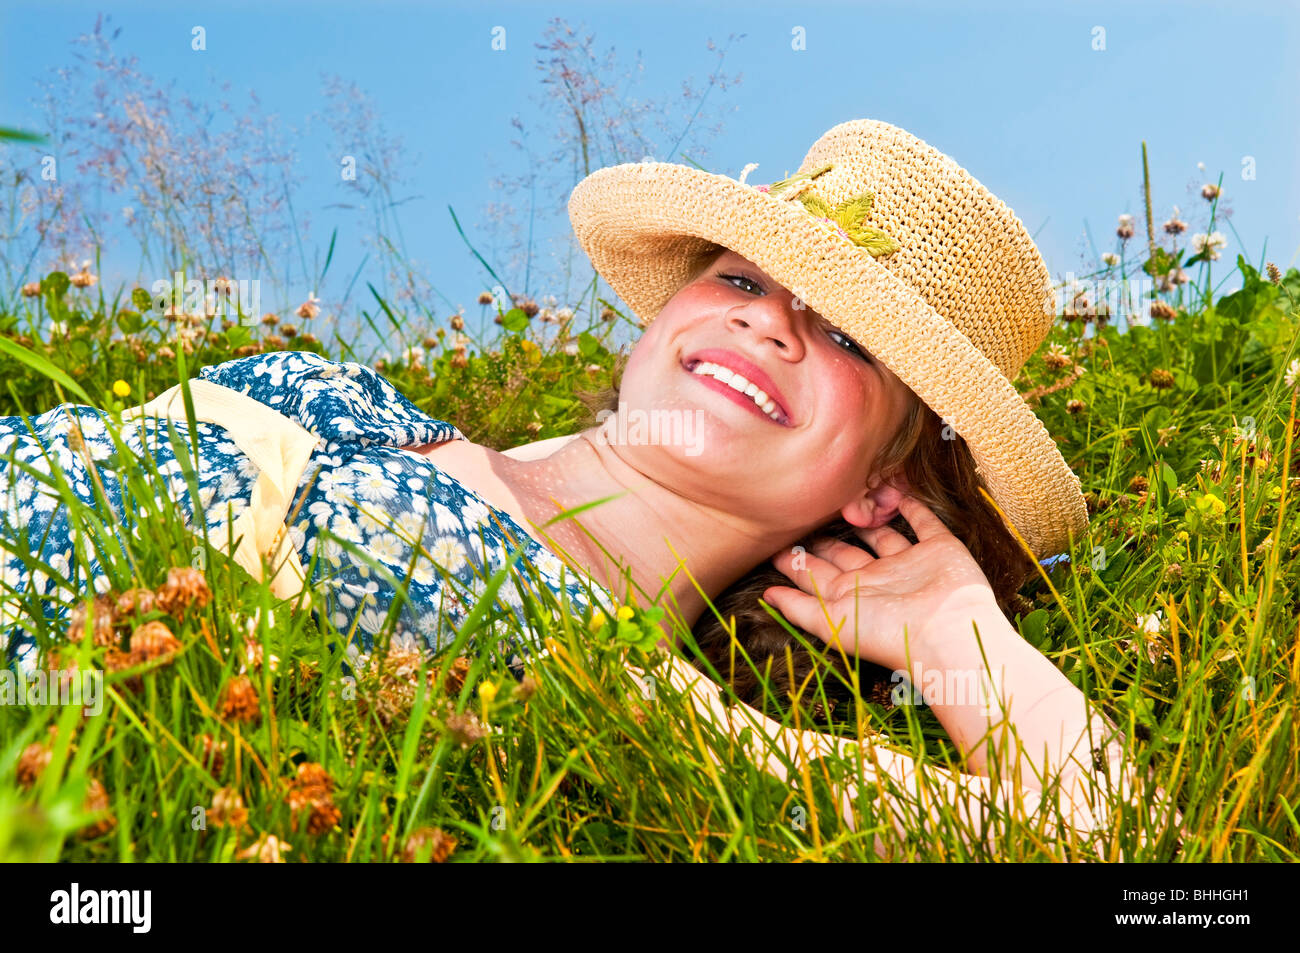 Young teenage girl laying on summer meadow amid wildflowers in straw hat - Stock Image